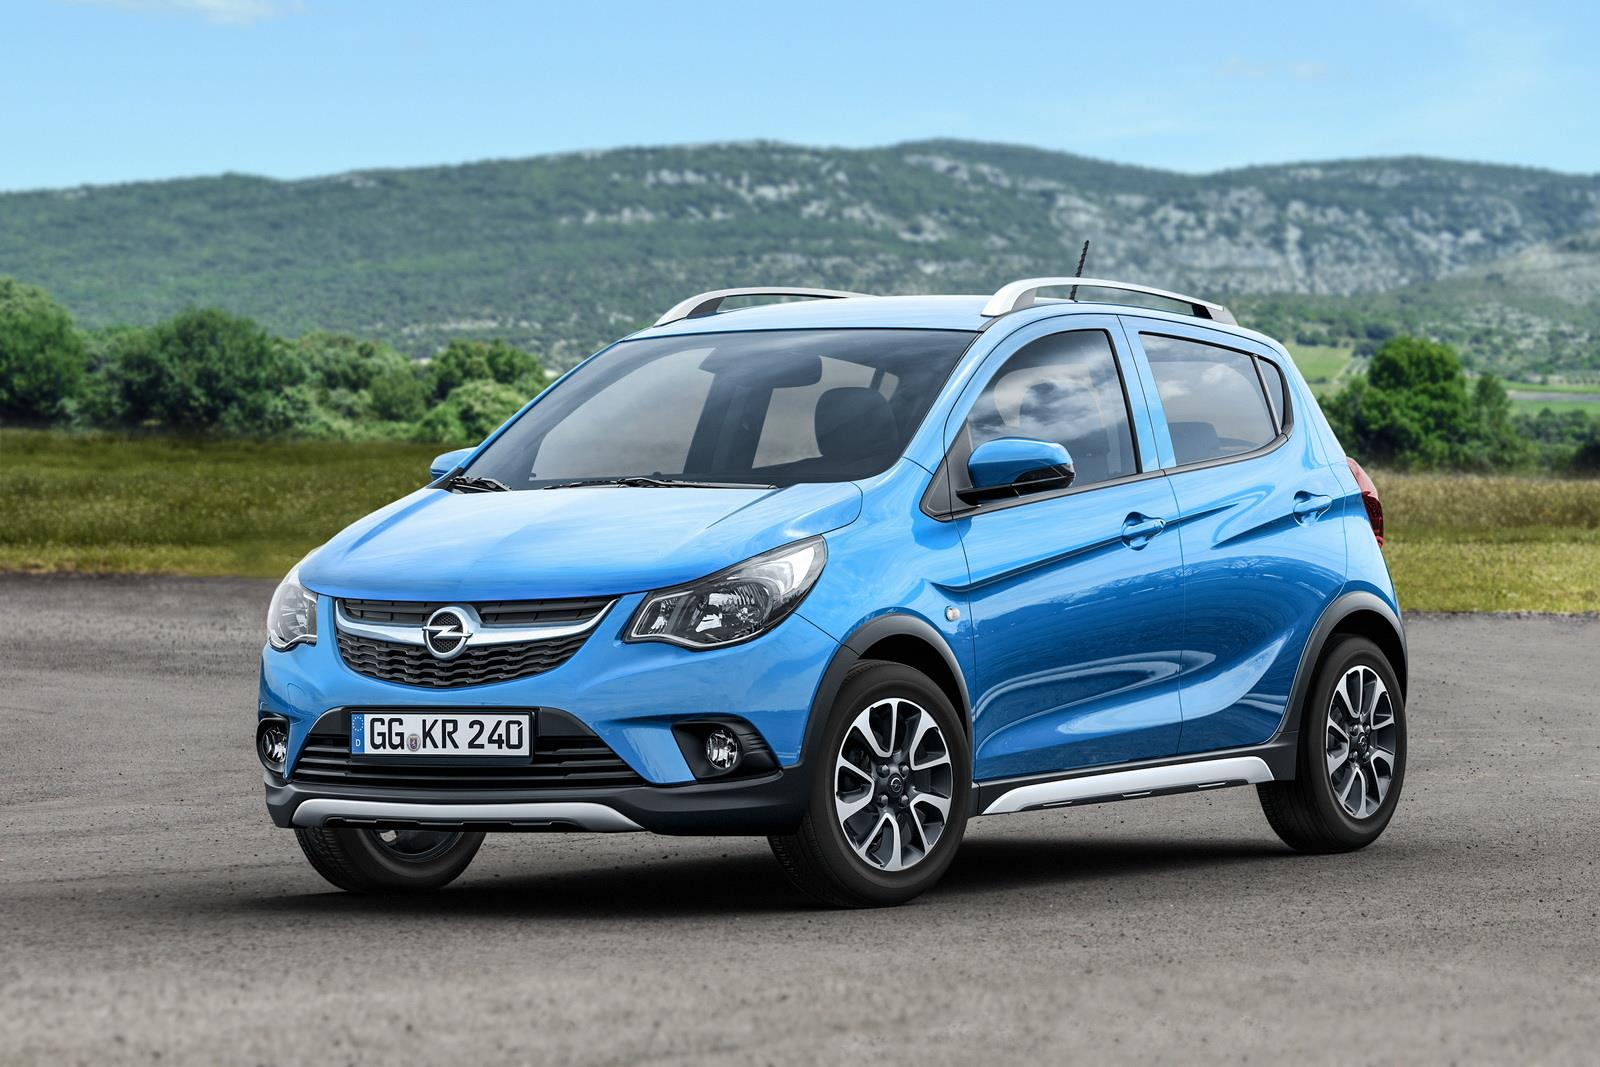 General Motors to sell Vauxhall and Opel brands to PSA